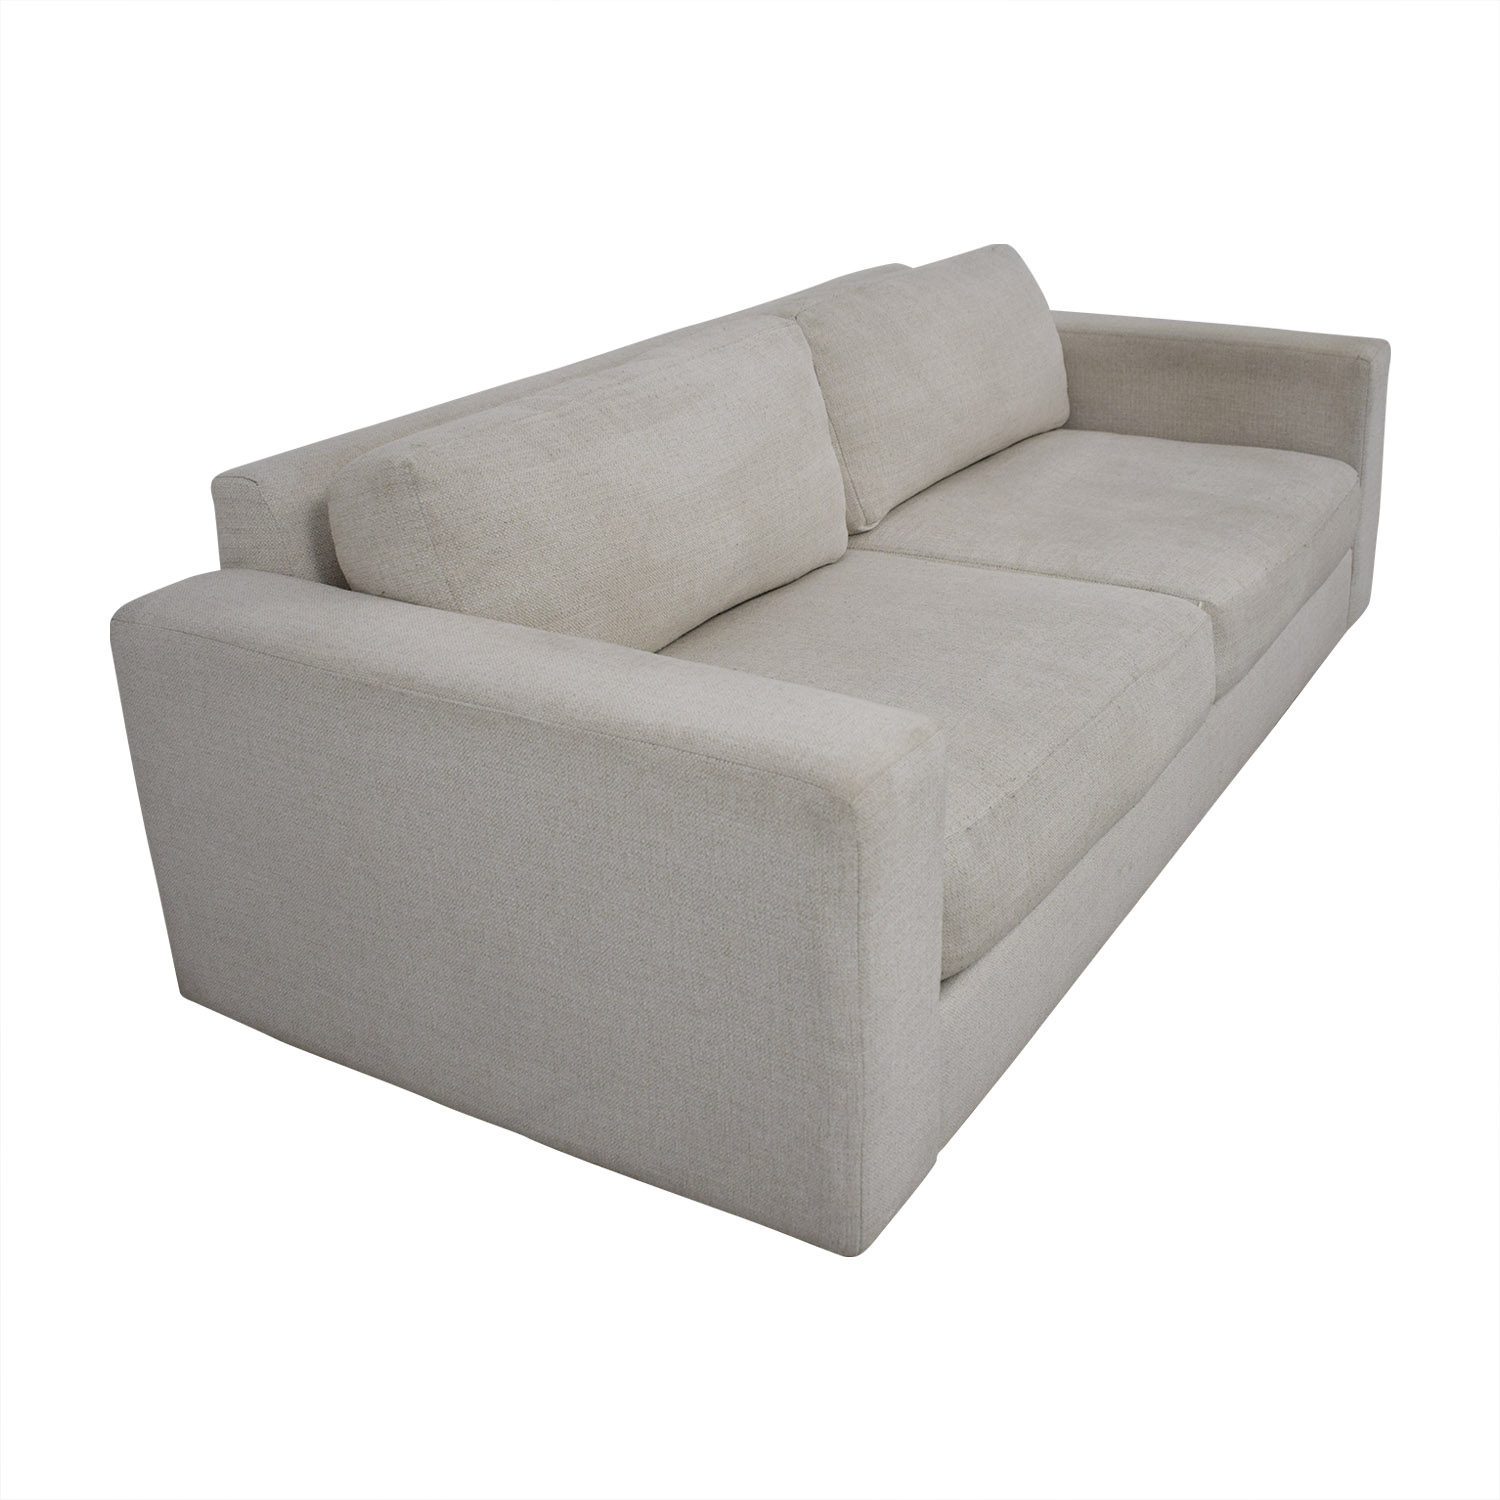 buy West Elm Urban Sofa West Elm